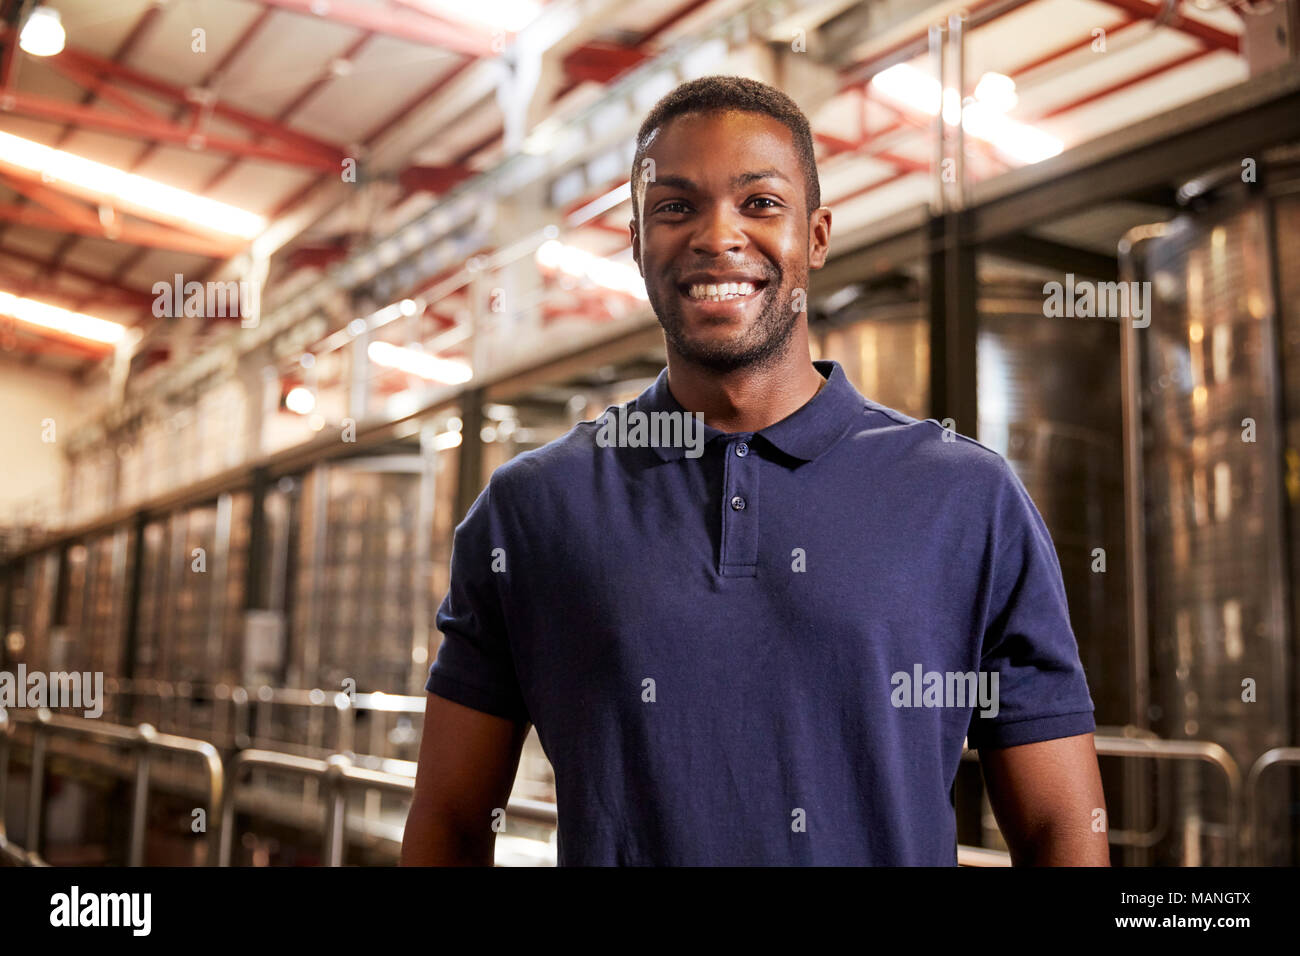 Portrait of a young black man working at a wine factory Stock Photo